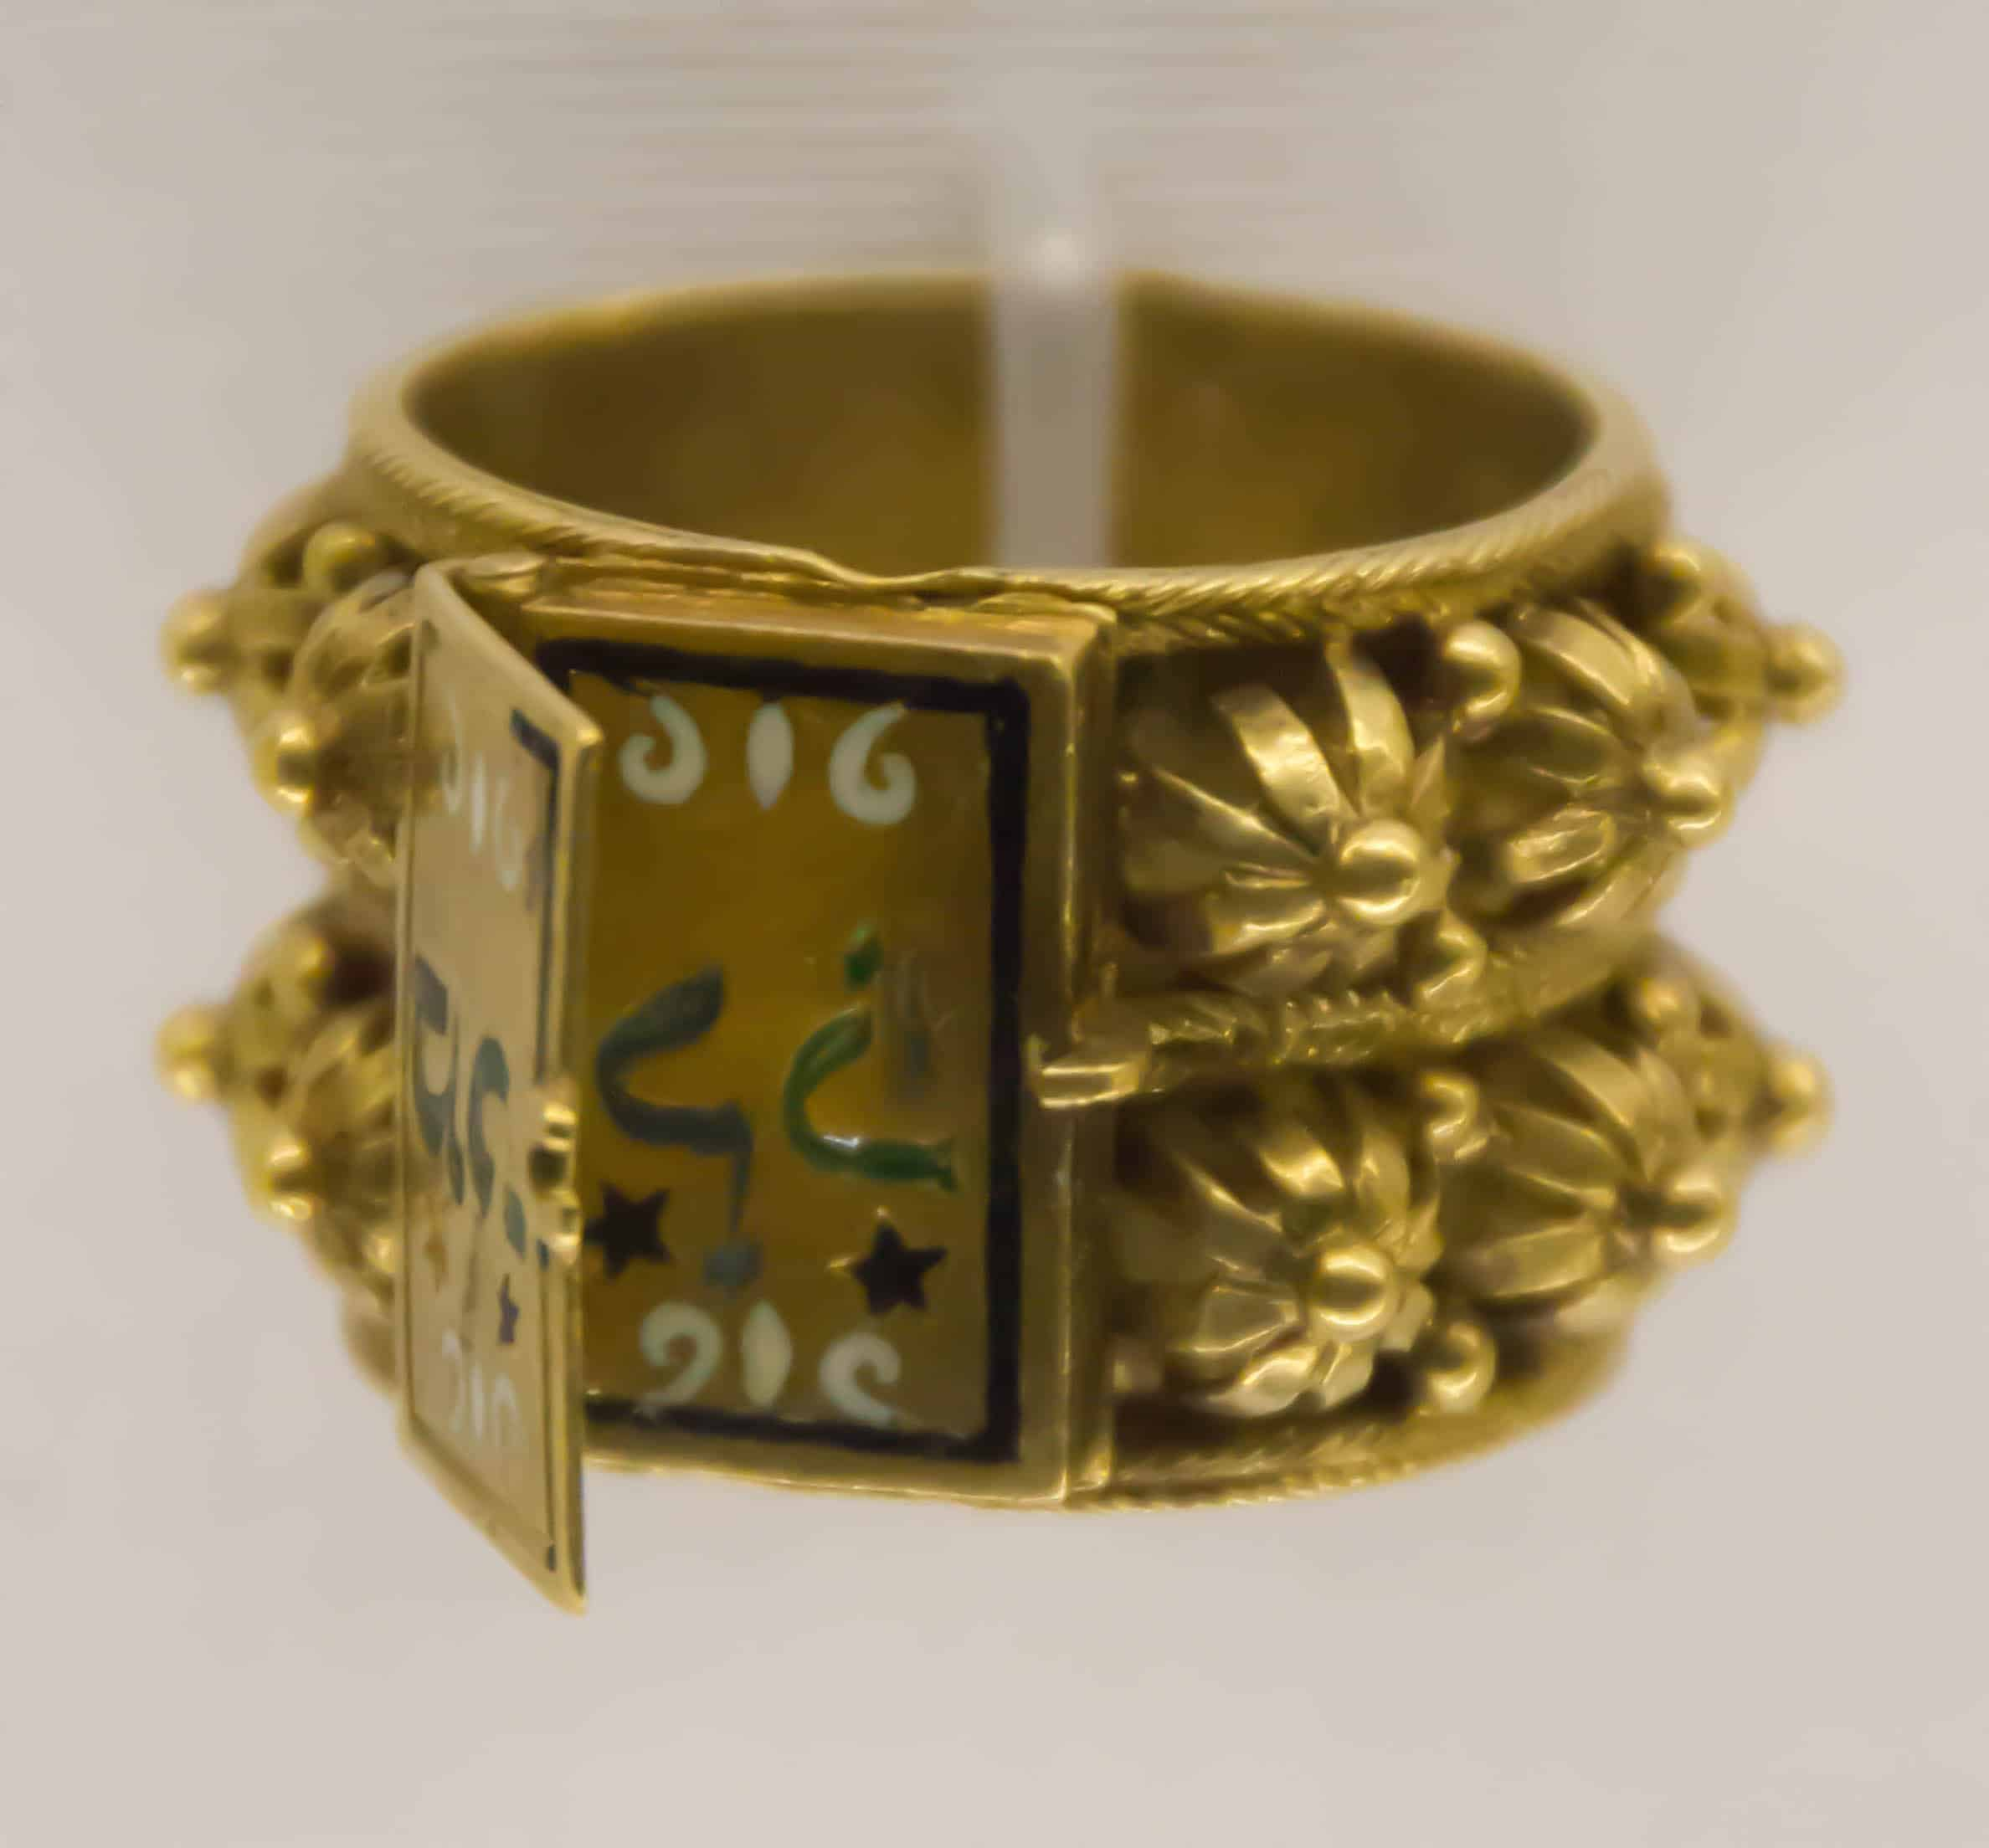 Jewish Wedding Ring Gold 18th 19th Cen Italy.jpg